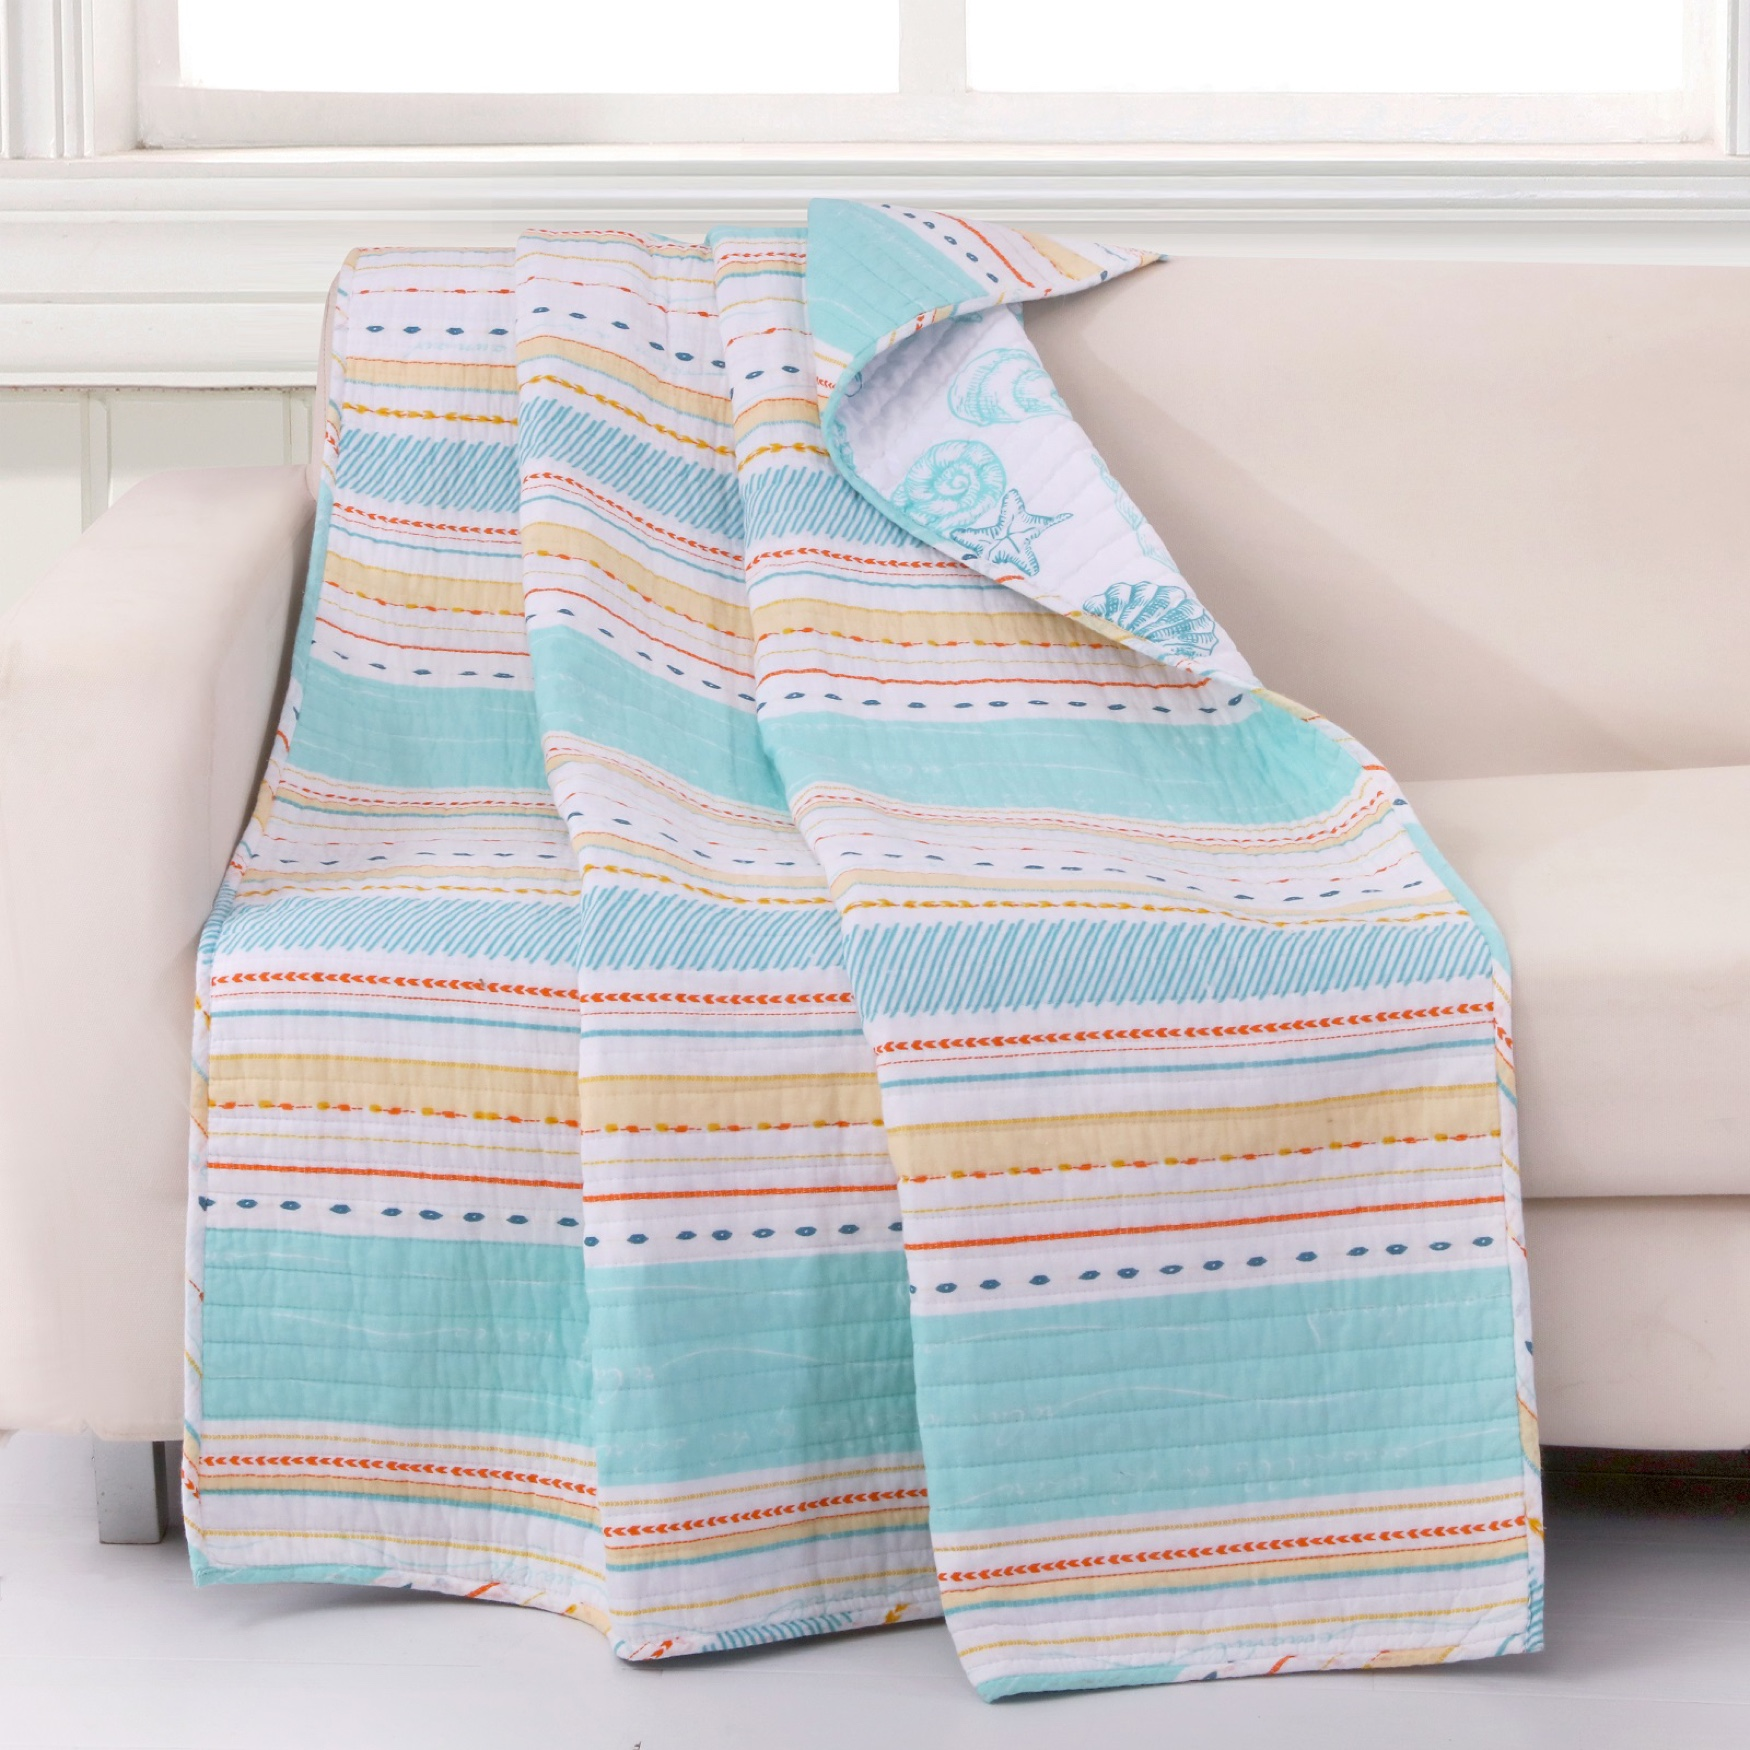 Barefoot Bungalow Pacifica Quilted Throw Blanket, AQUA